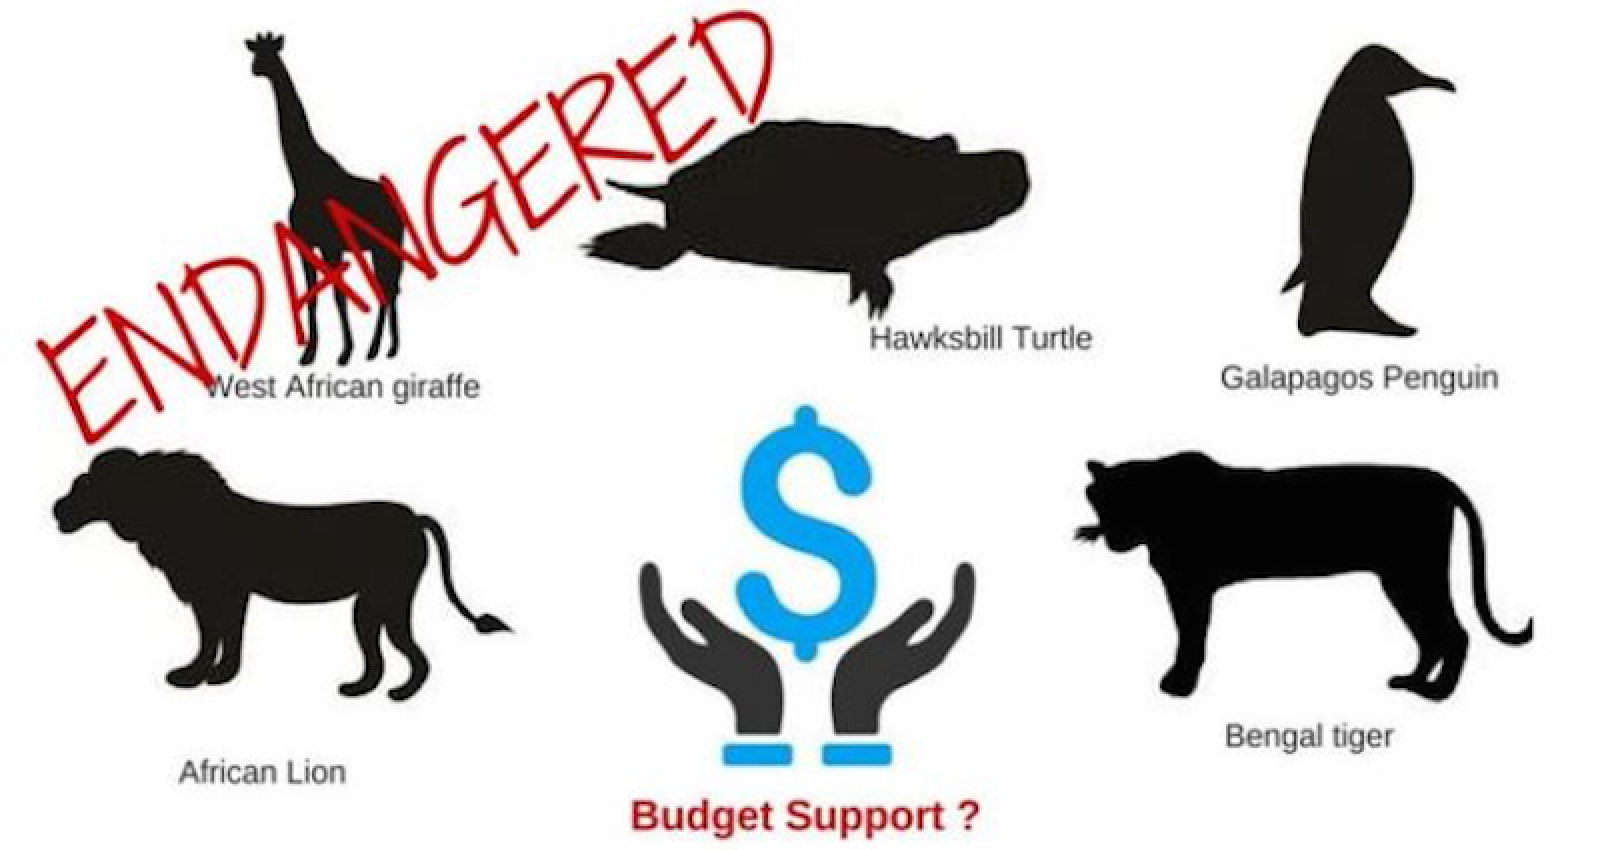 Is Budget Support an Endangered Species?